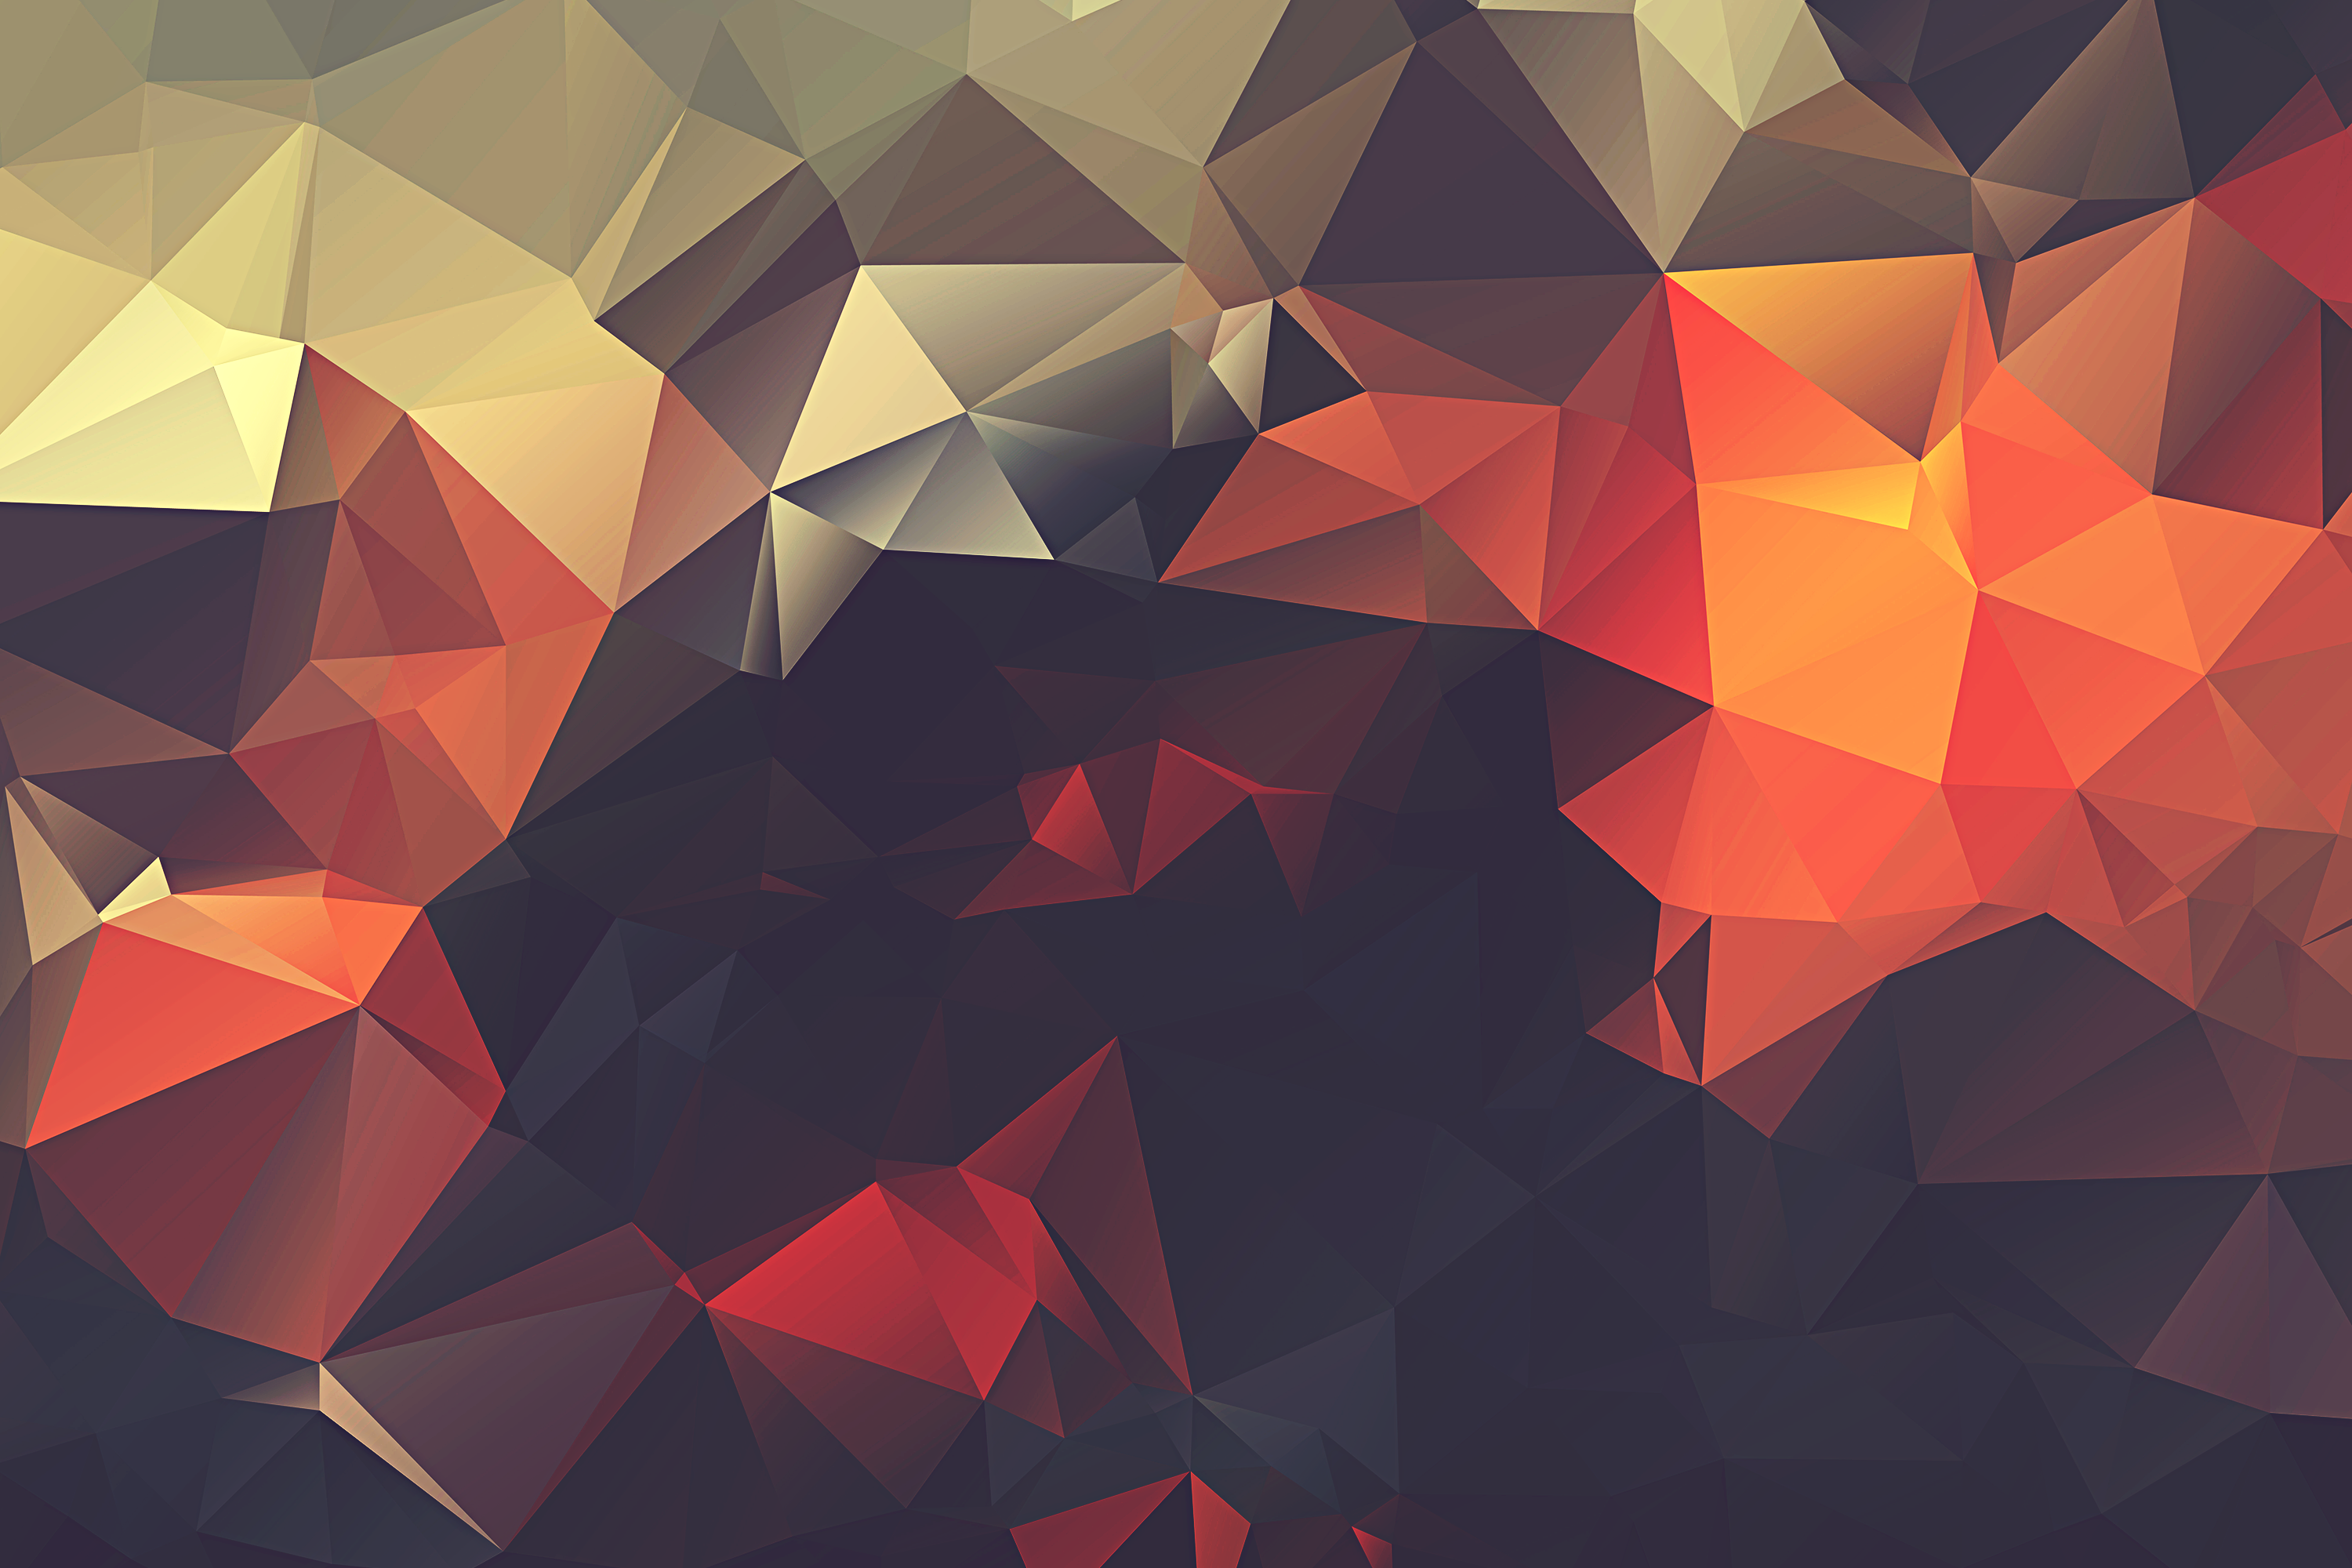 Android Wallpapers Of The Week 13 Polygon Backgrounds